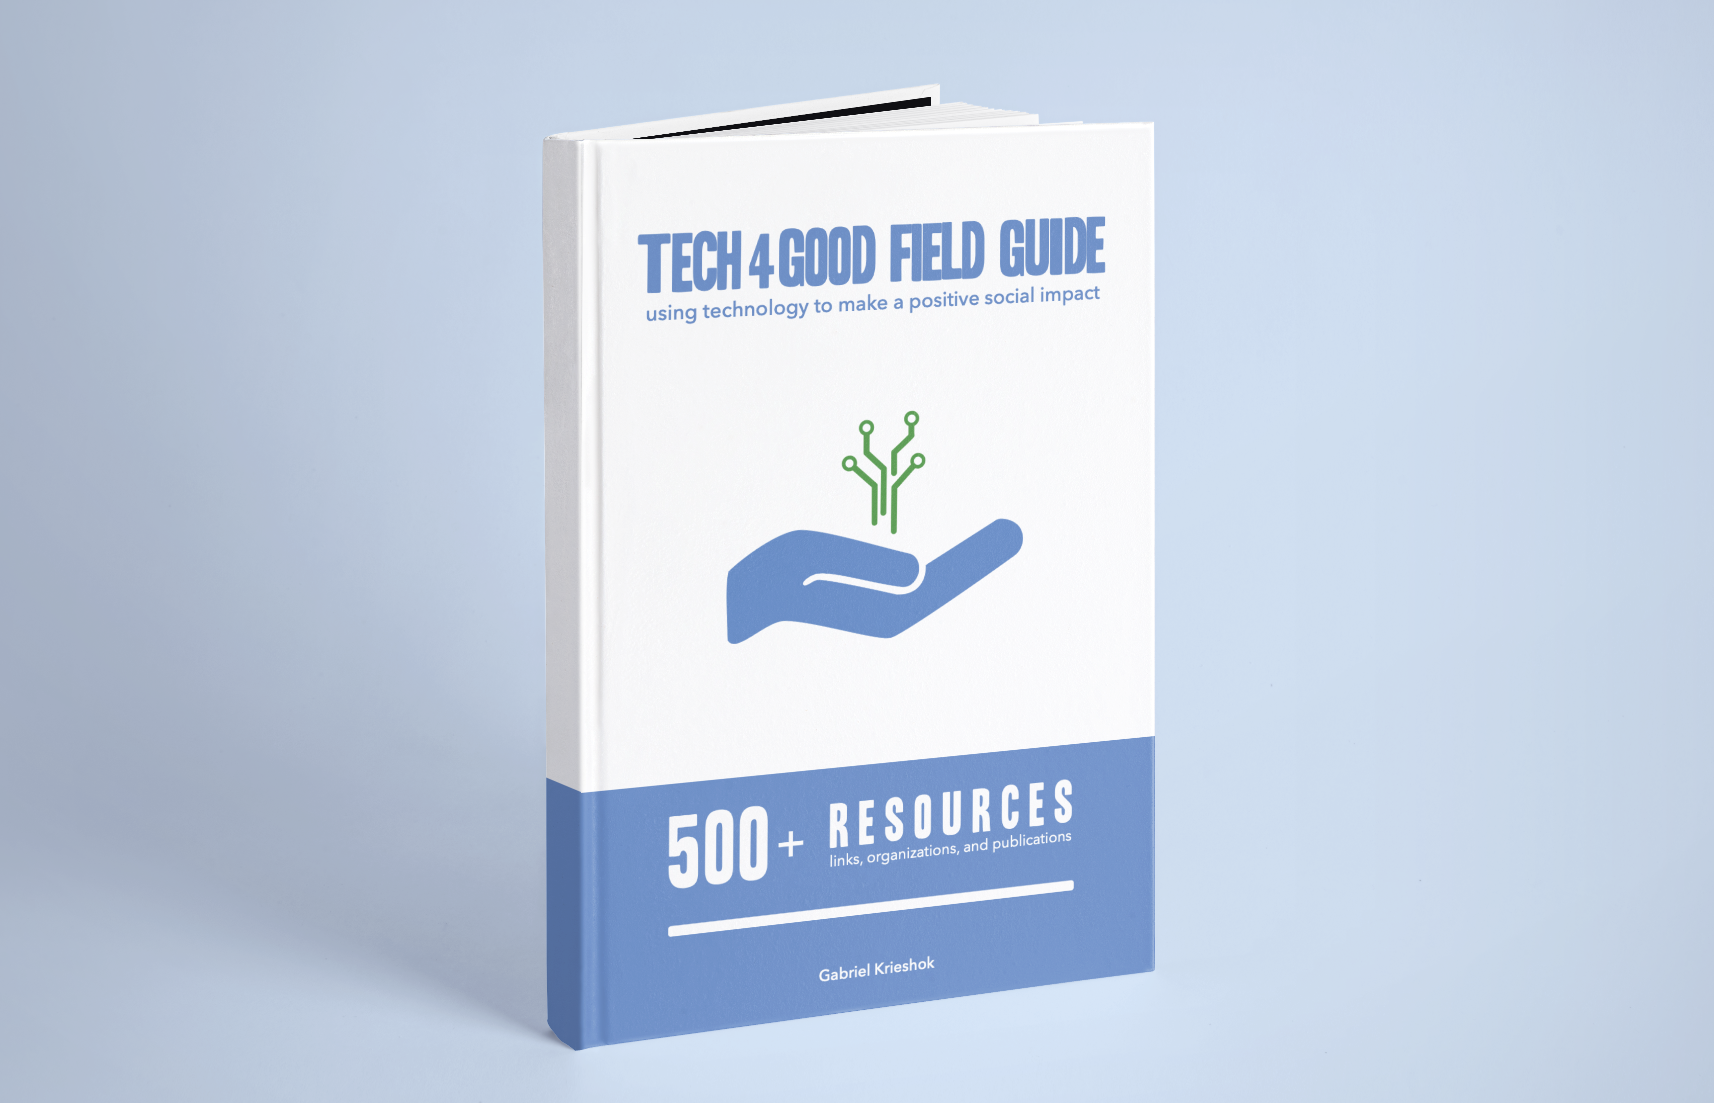 The Tech4Good Field Guide